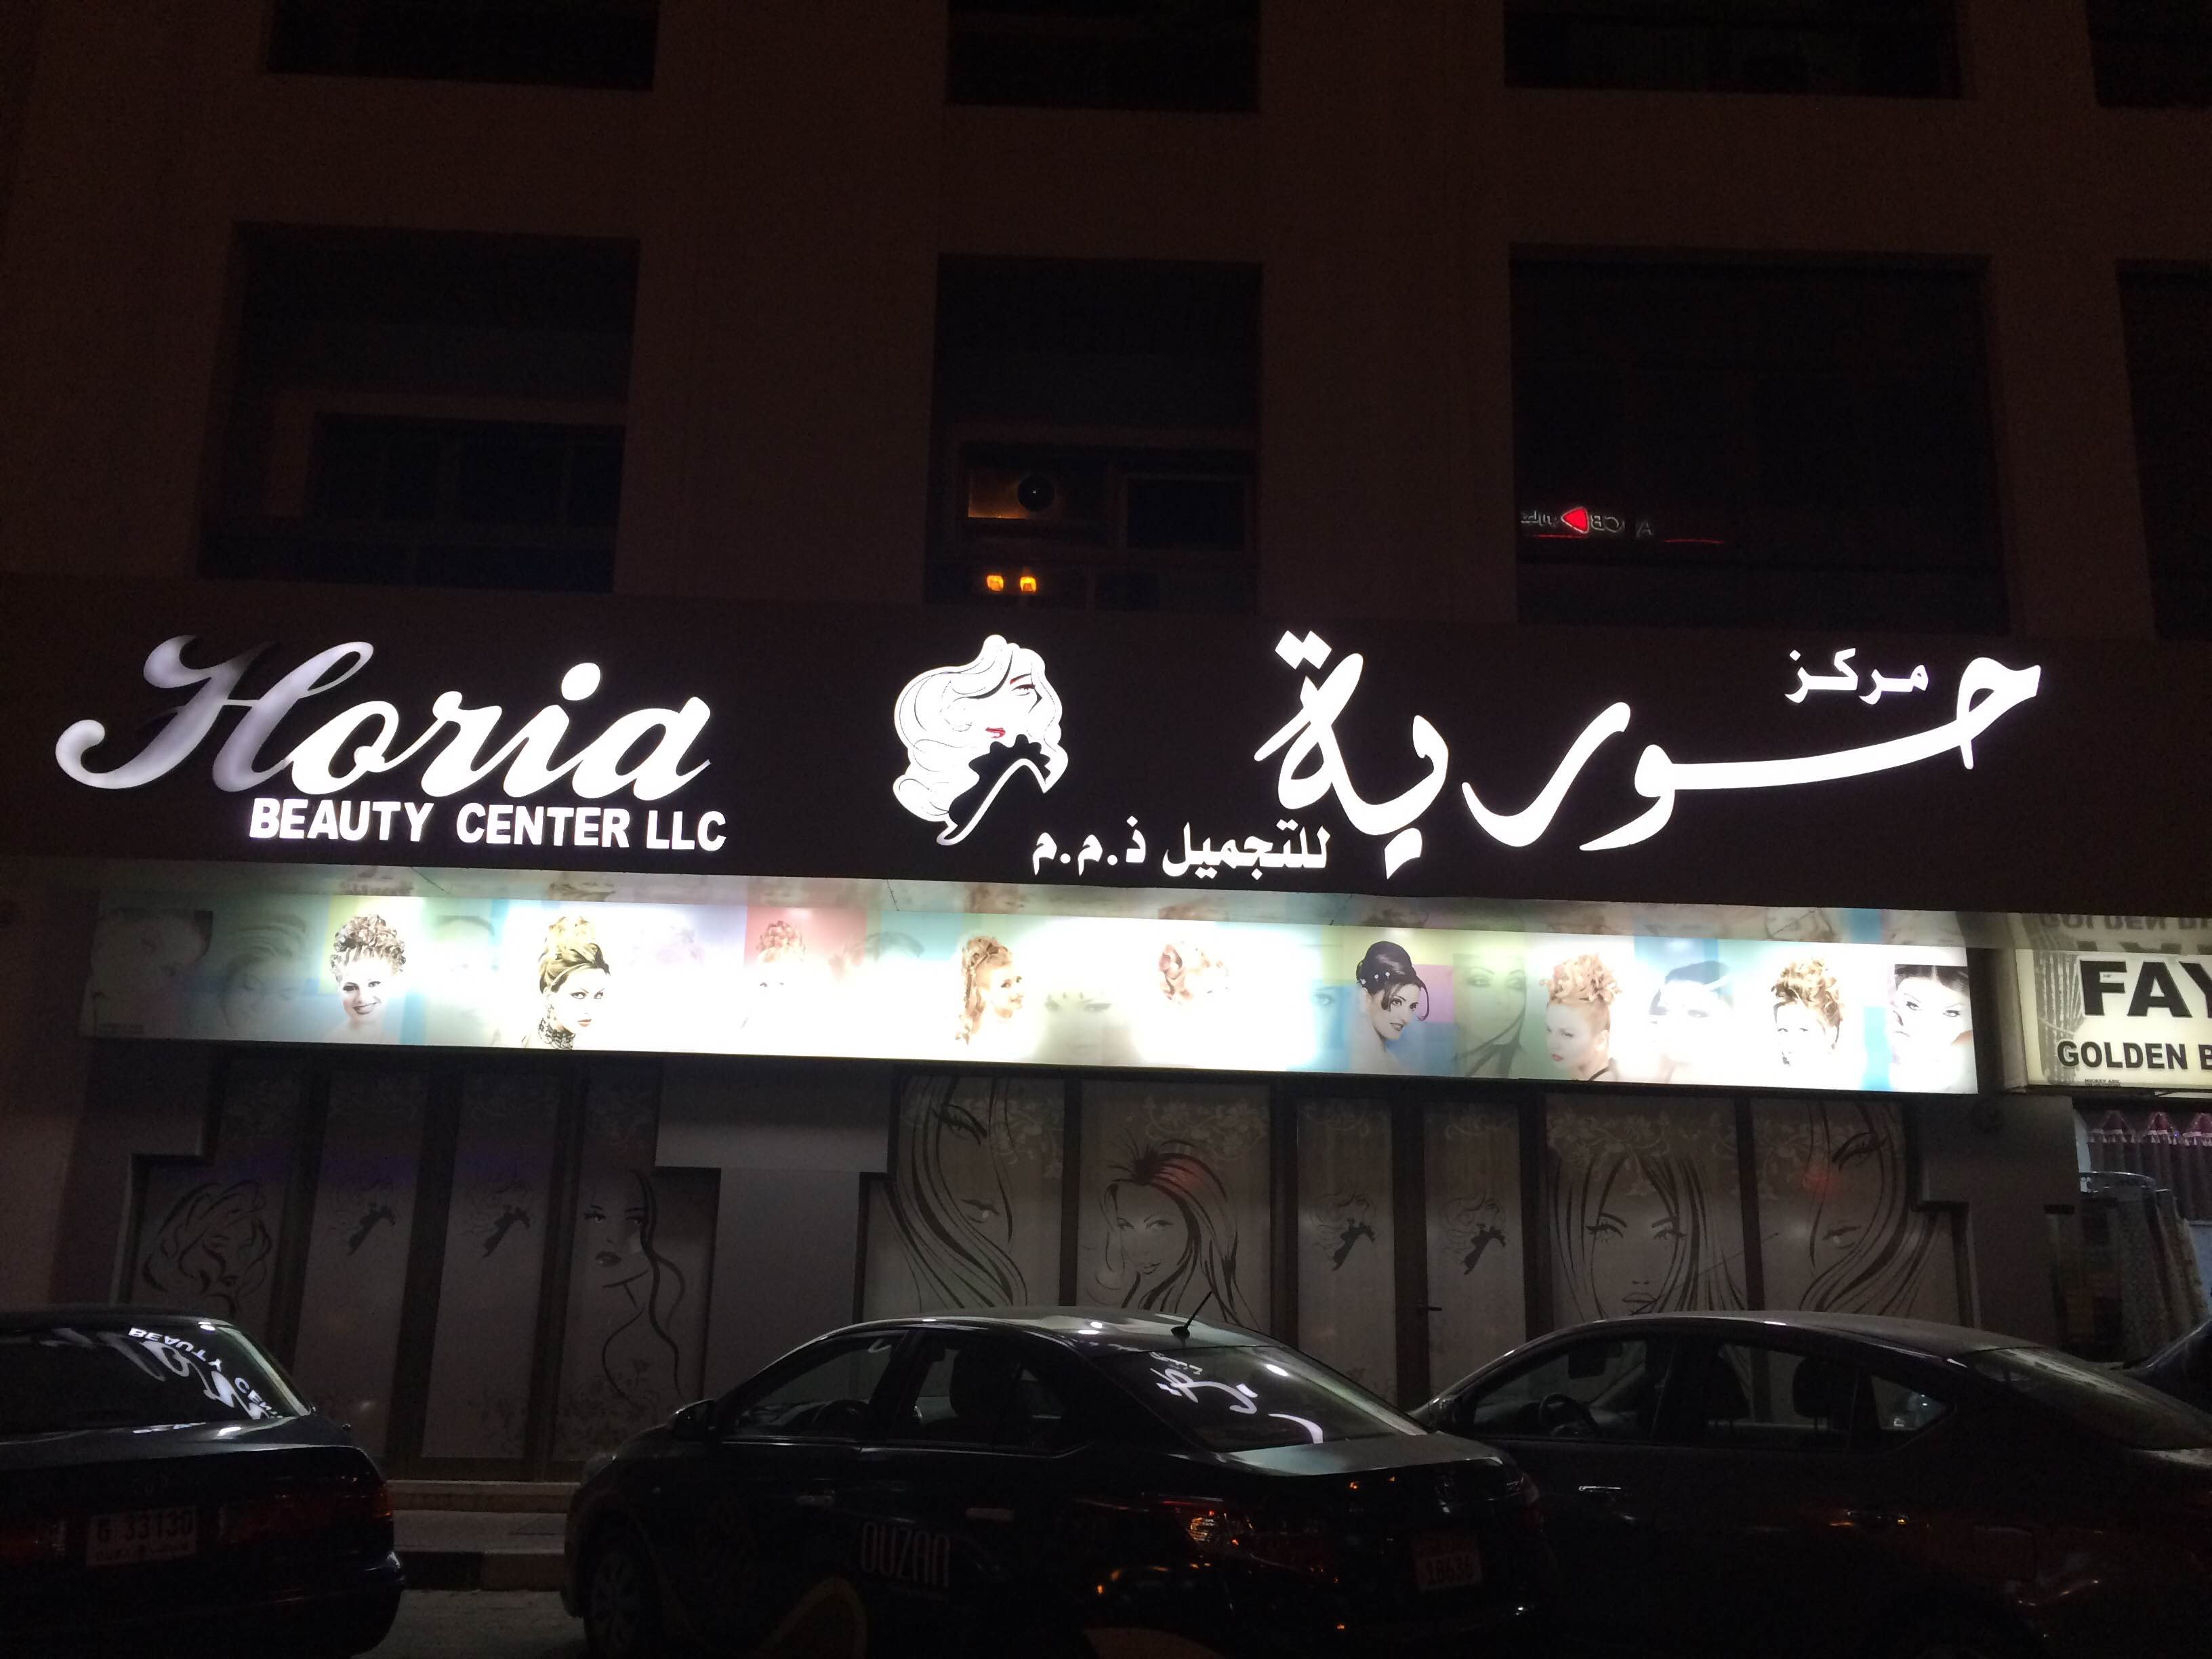 Horia Beauty Center